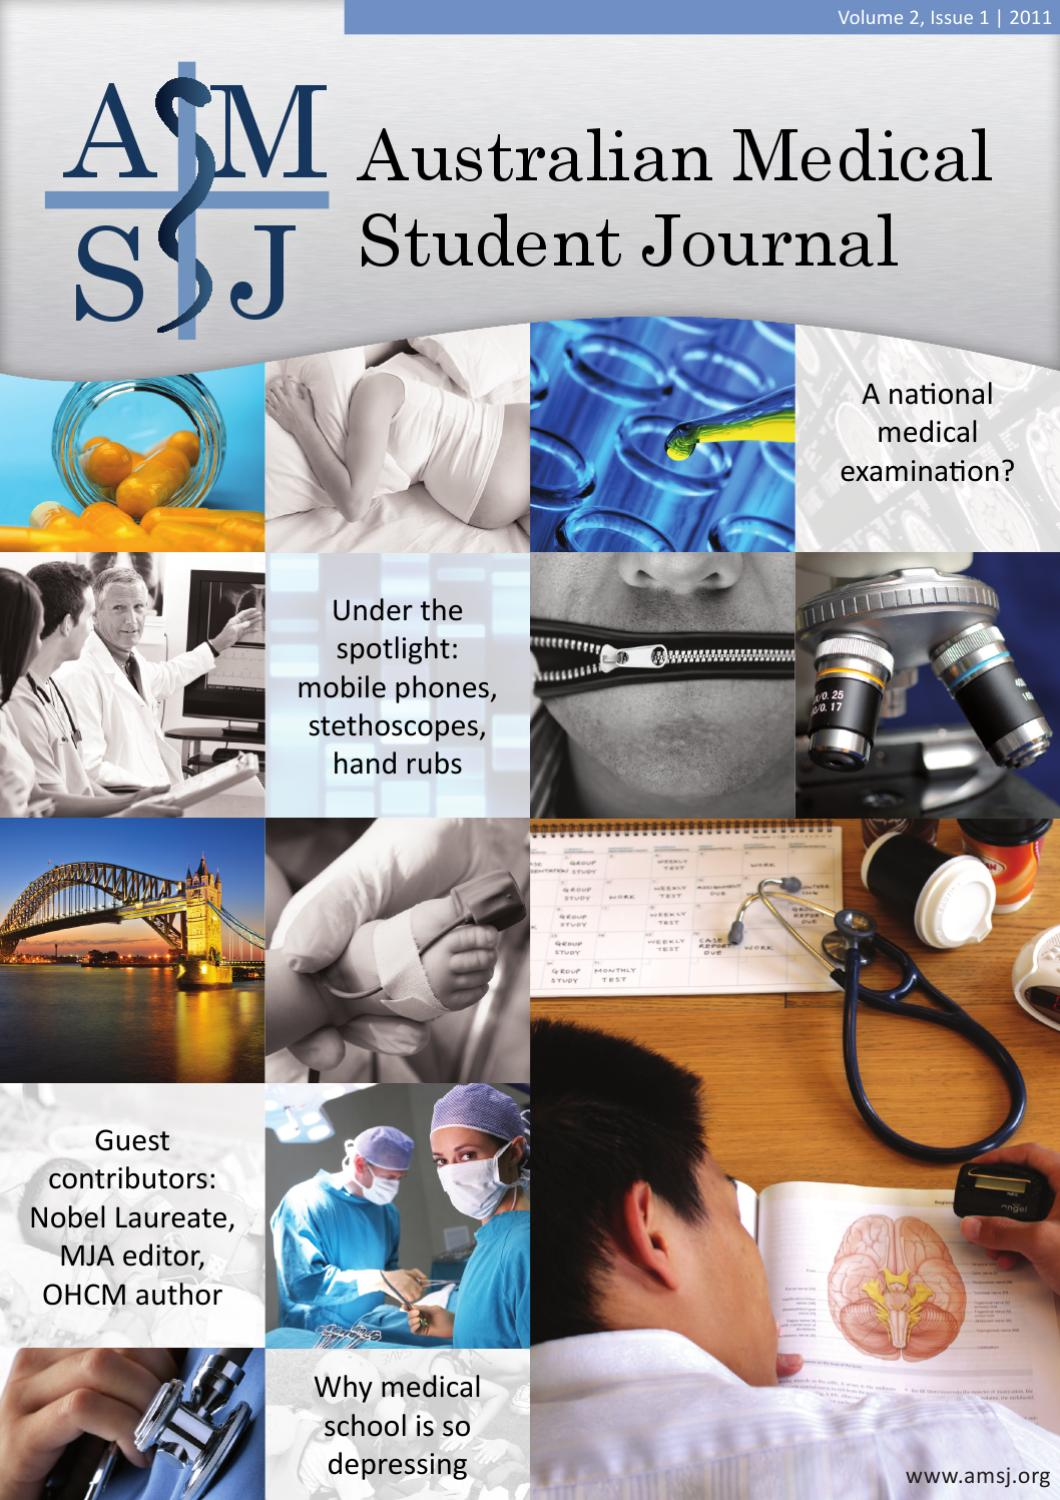 Australian Medical Student Journal, Vol 2, Issue 1 by